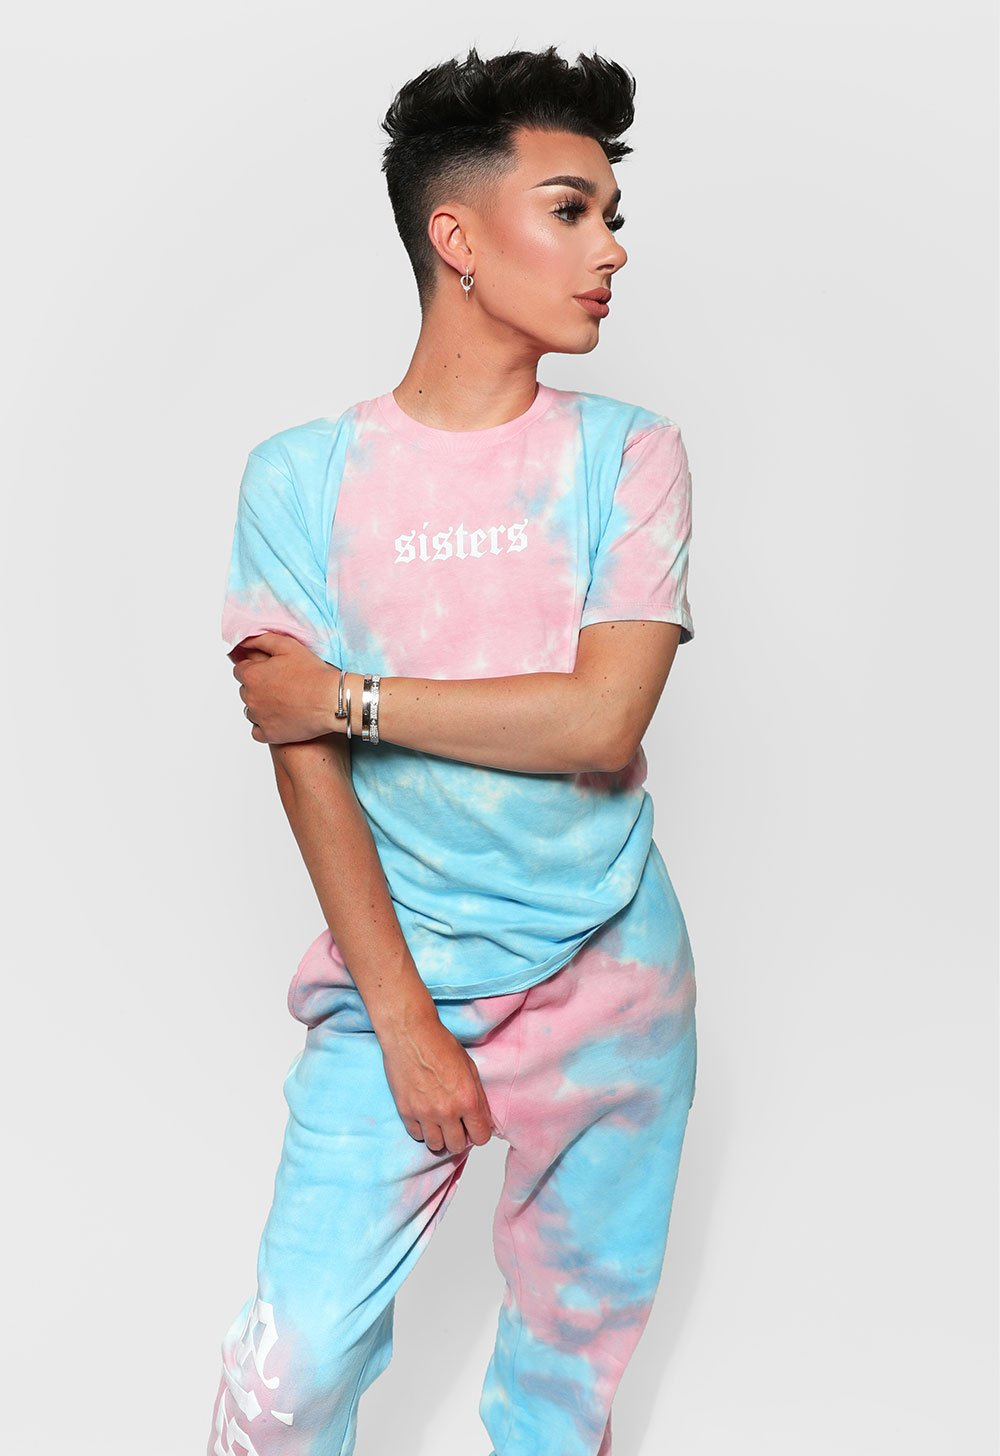 COTTON CANDY T-SHIRT (PREORDER)